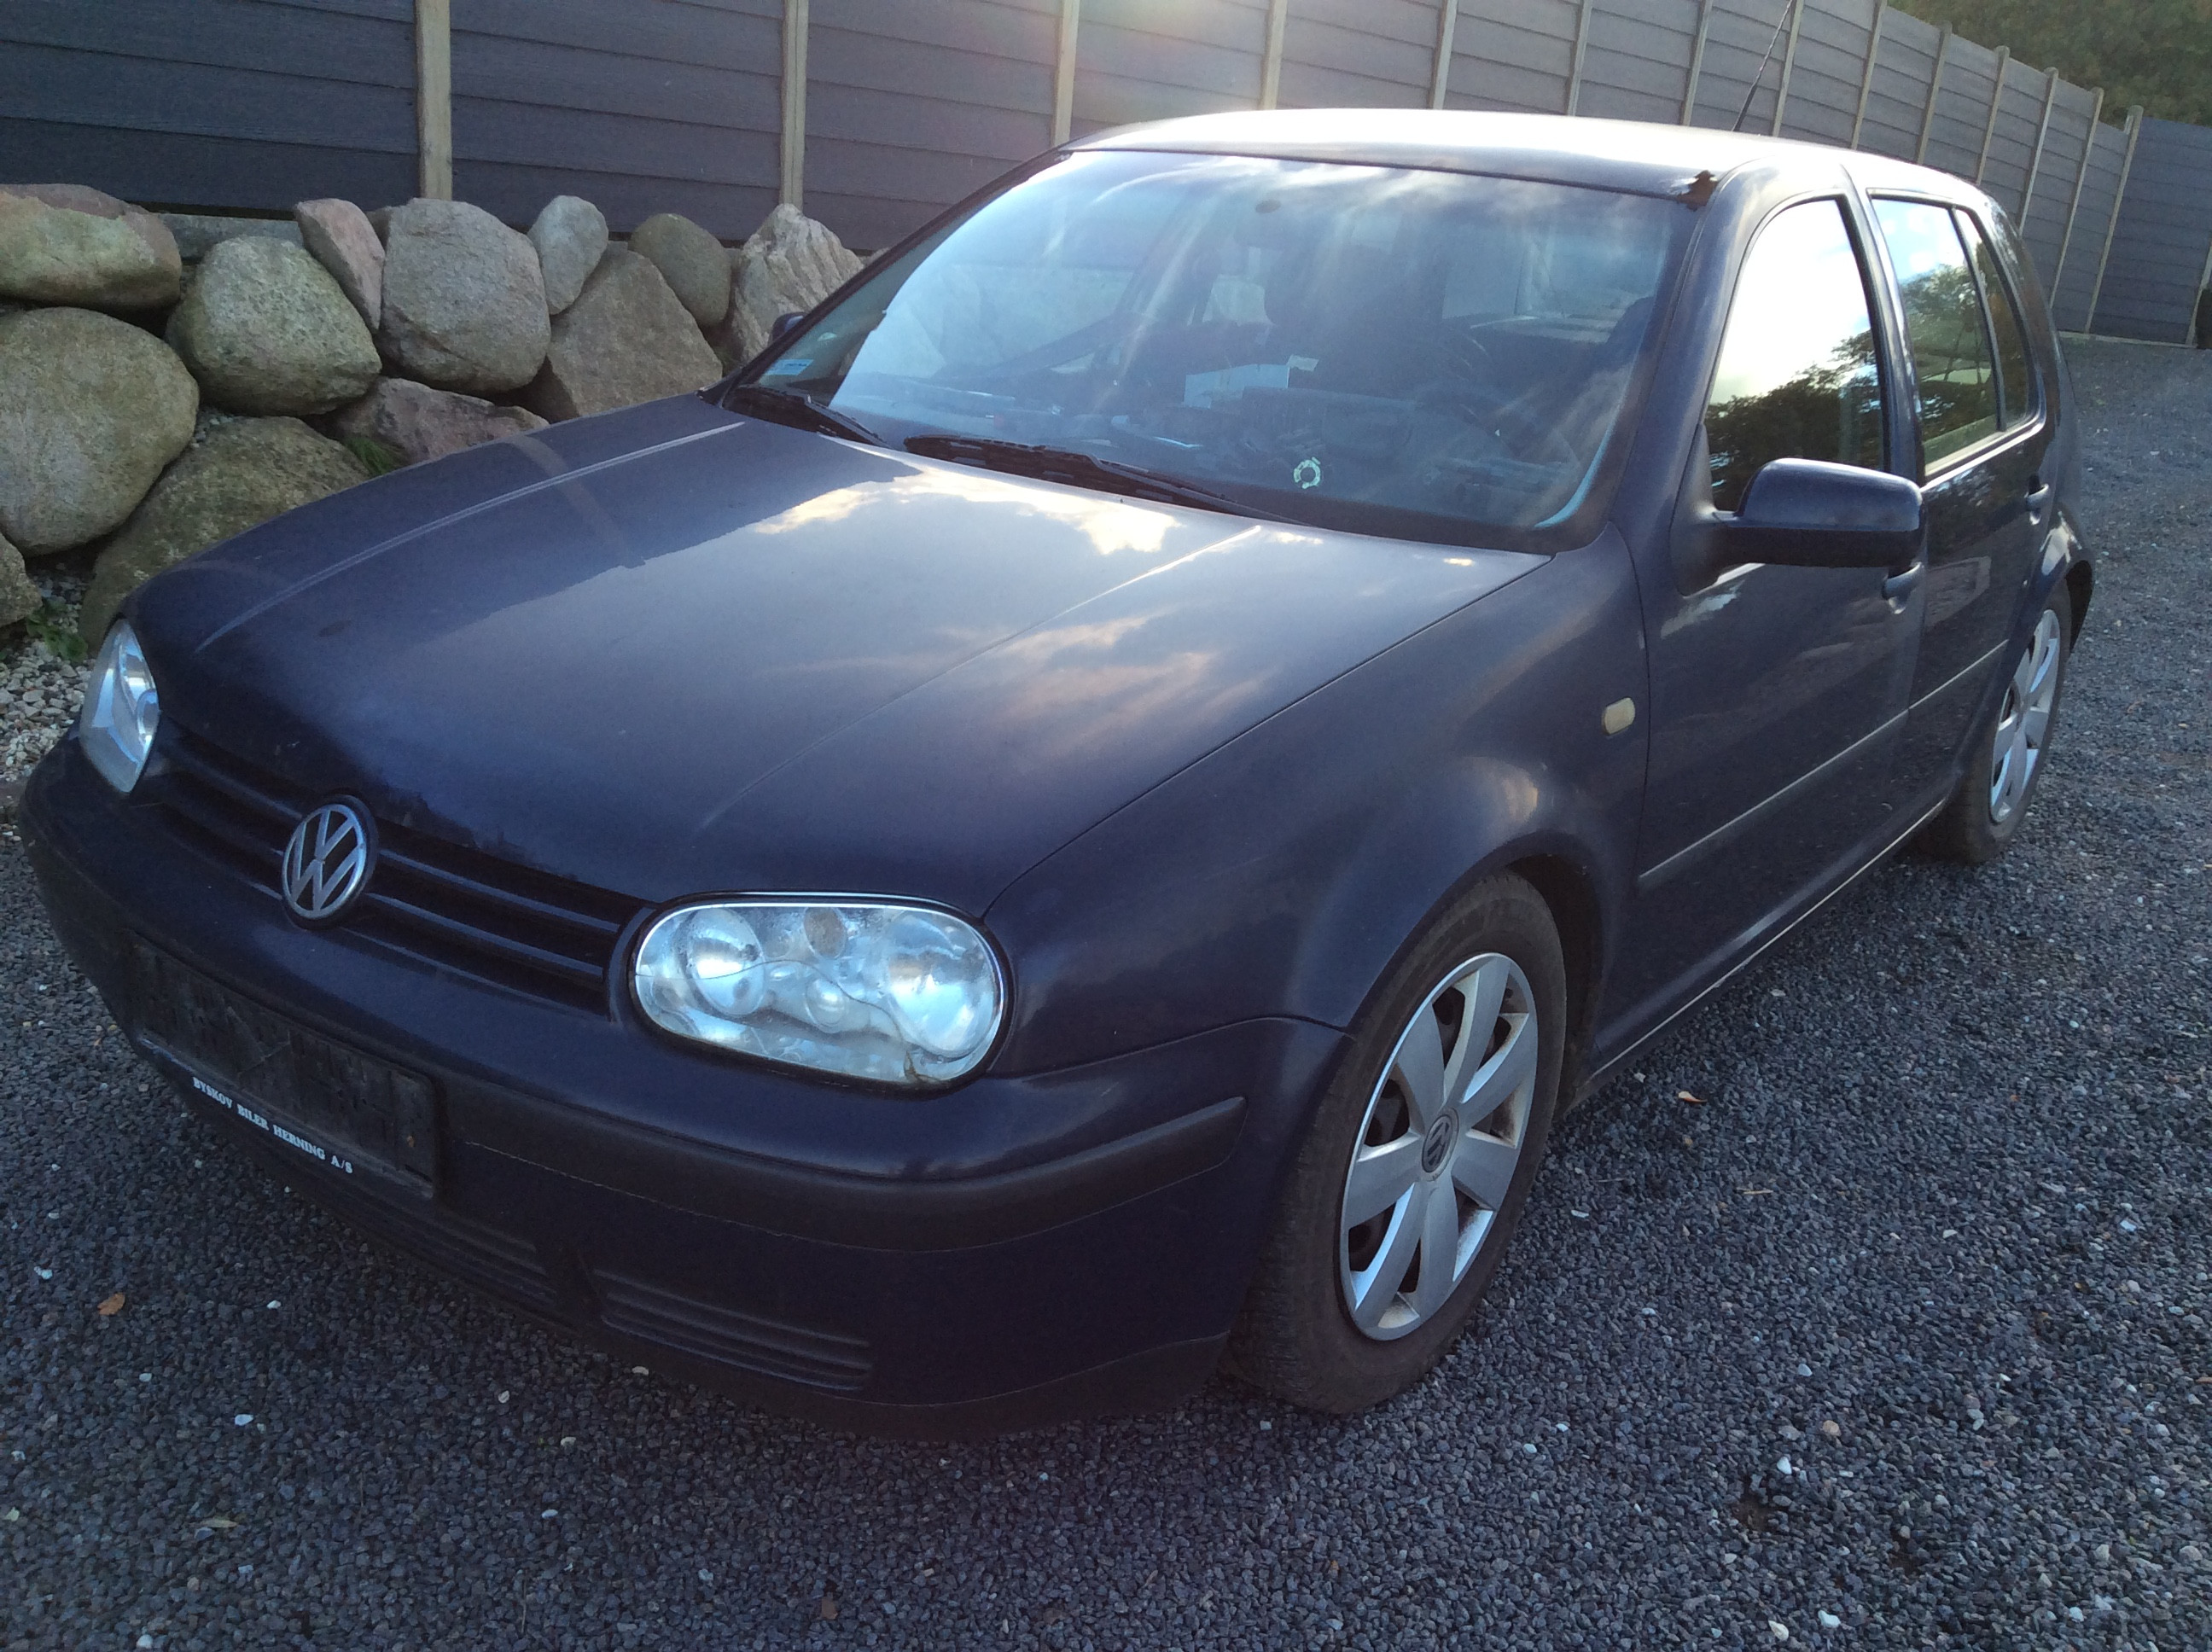 Reservedele,VW GOLF 4 1,8 år1998,123-1018